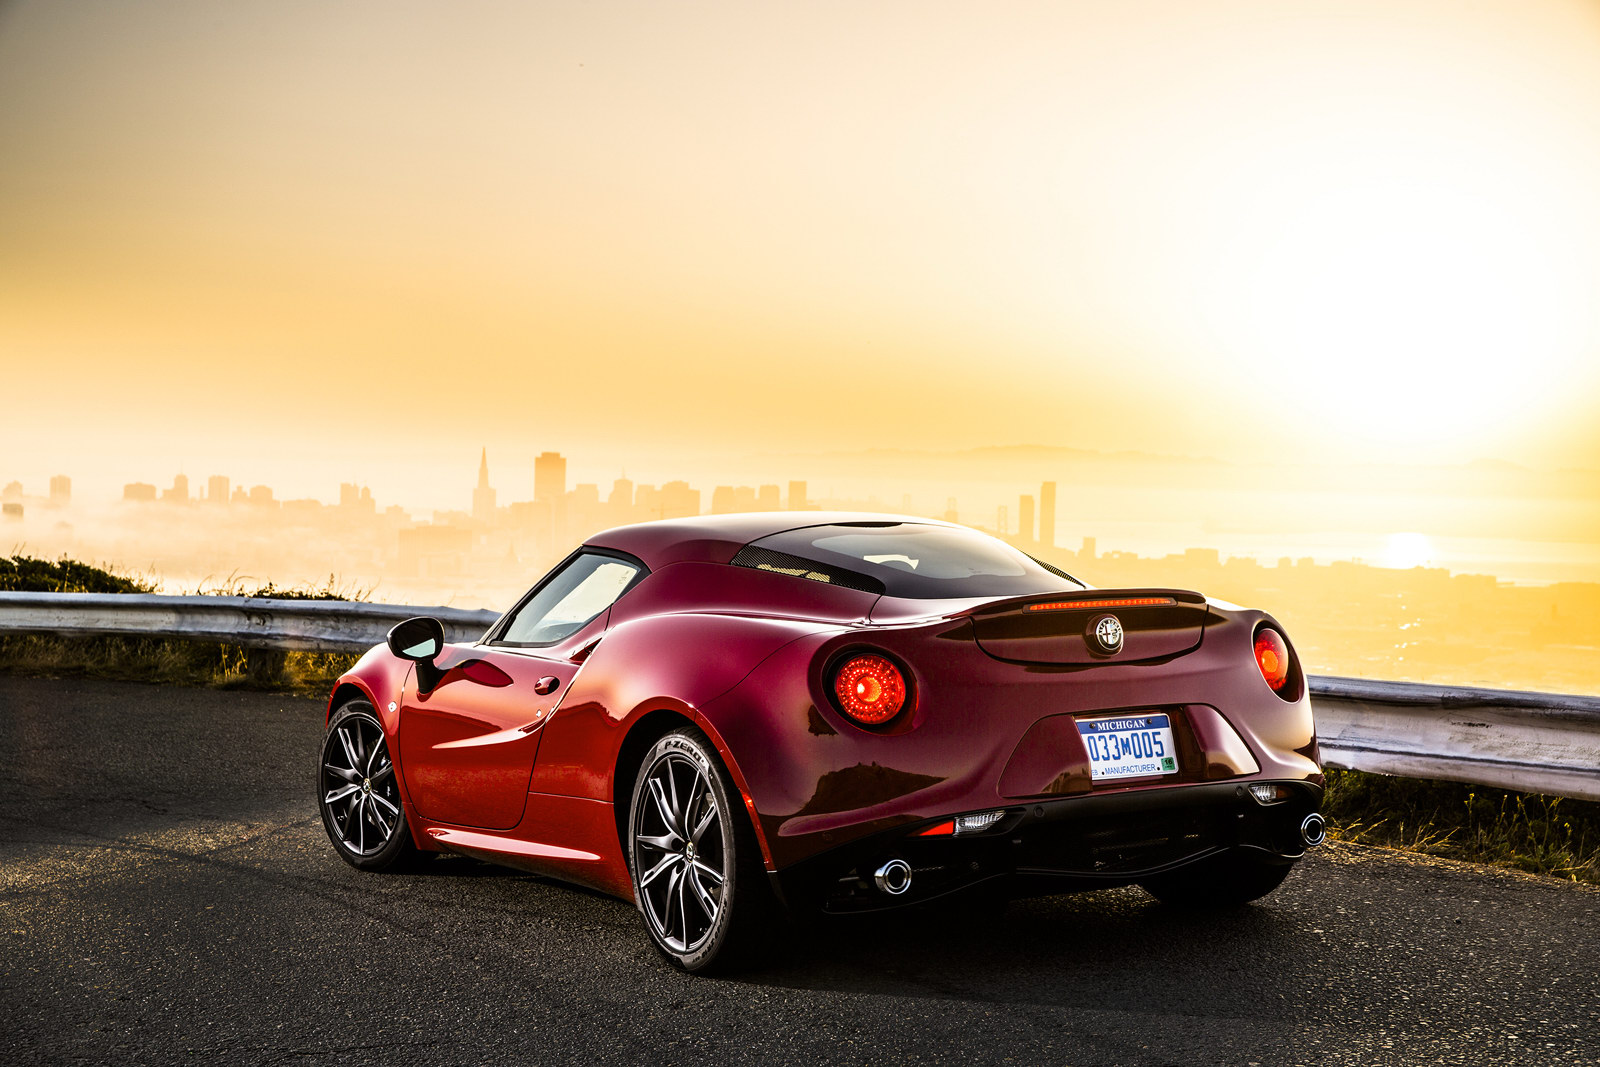 Alfa Romeo 4c Owners Manual Browse Guides Repair Manuals Won T Be Offered Gtspirit Rh Com 2015 User